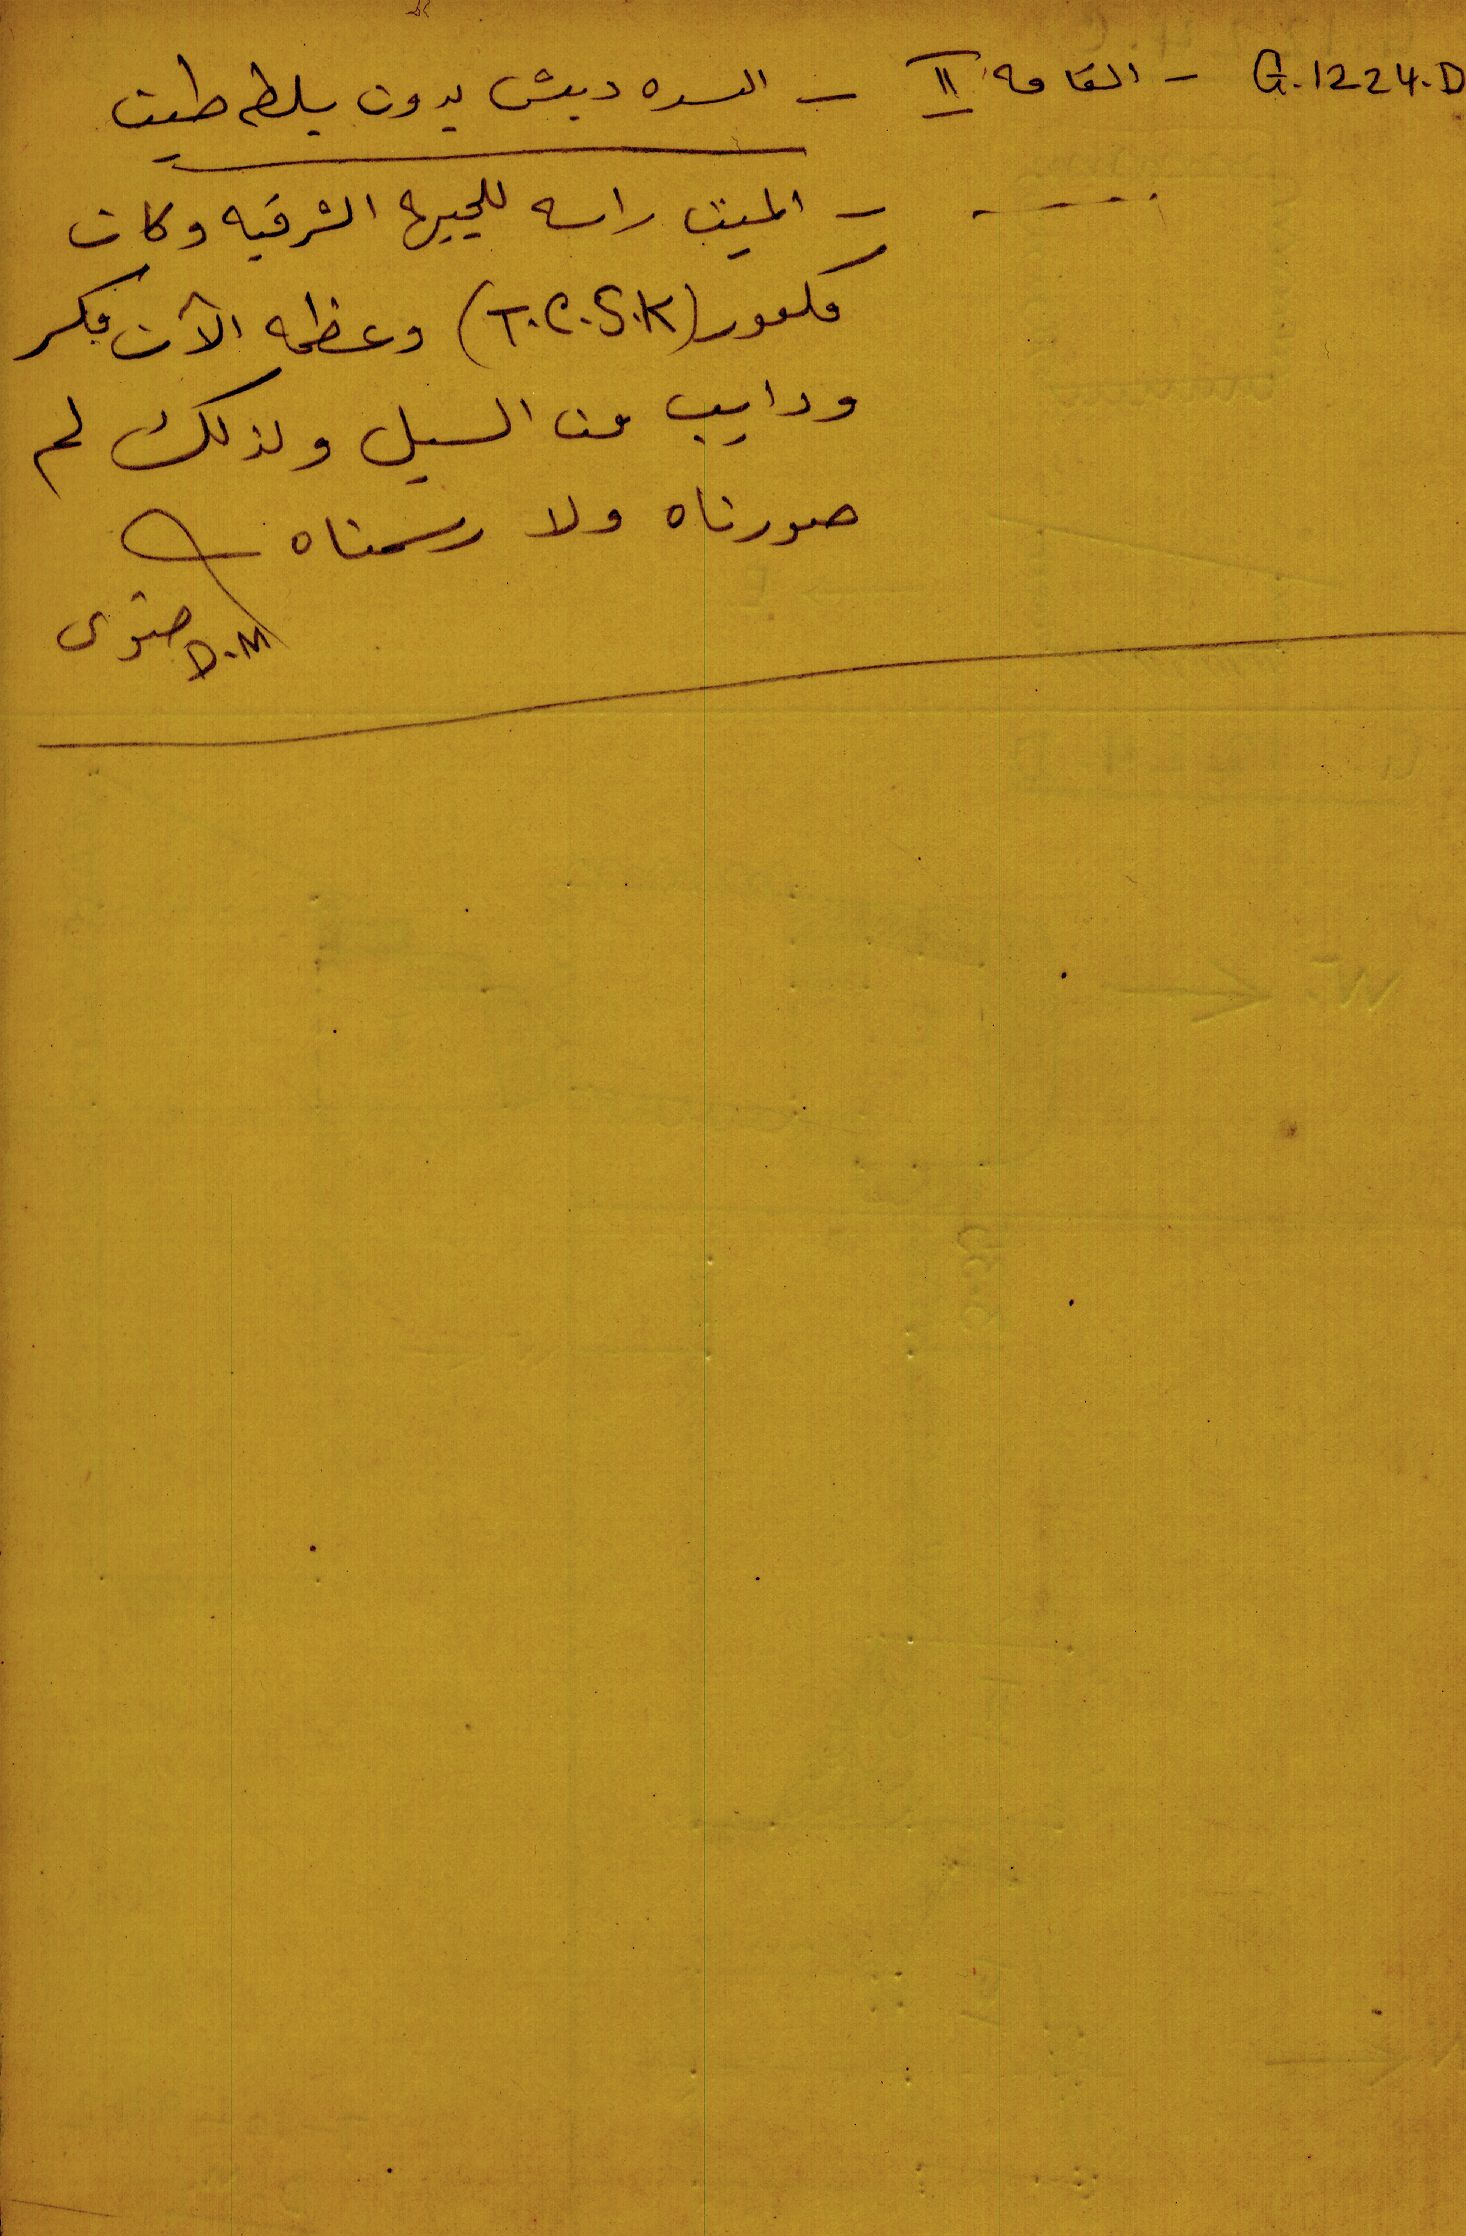 Notes: G 1224+1311: G 1224, Shaft D, notes (in Arabic)